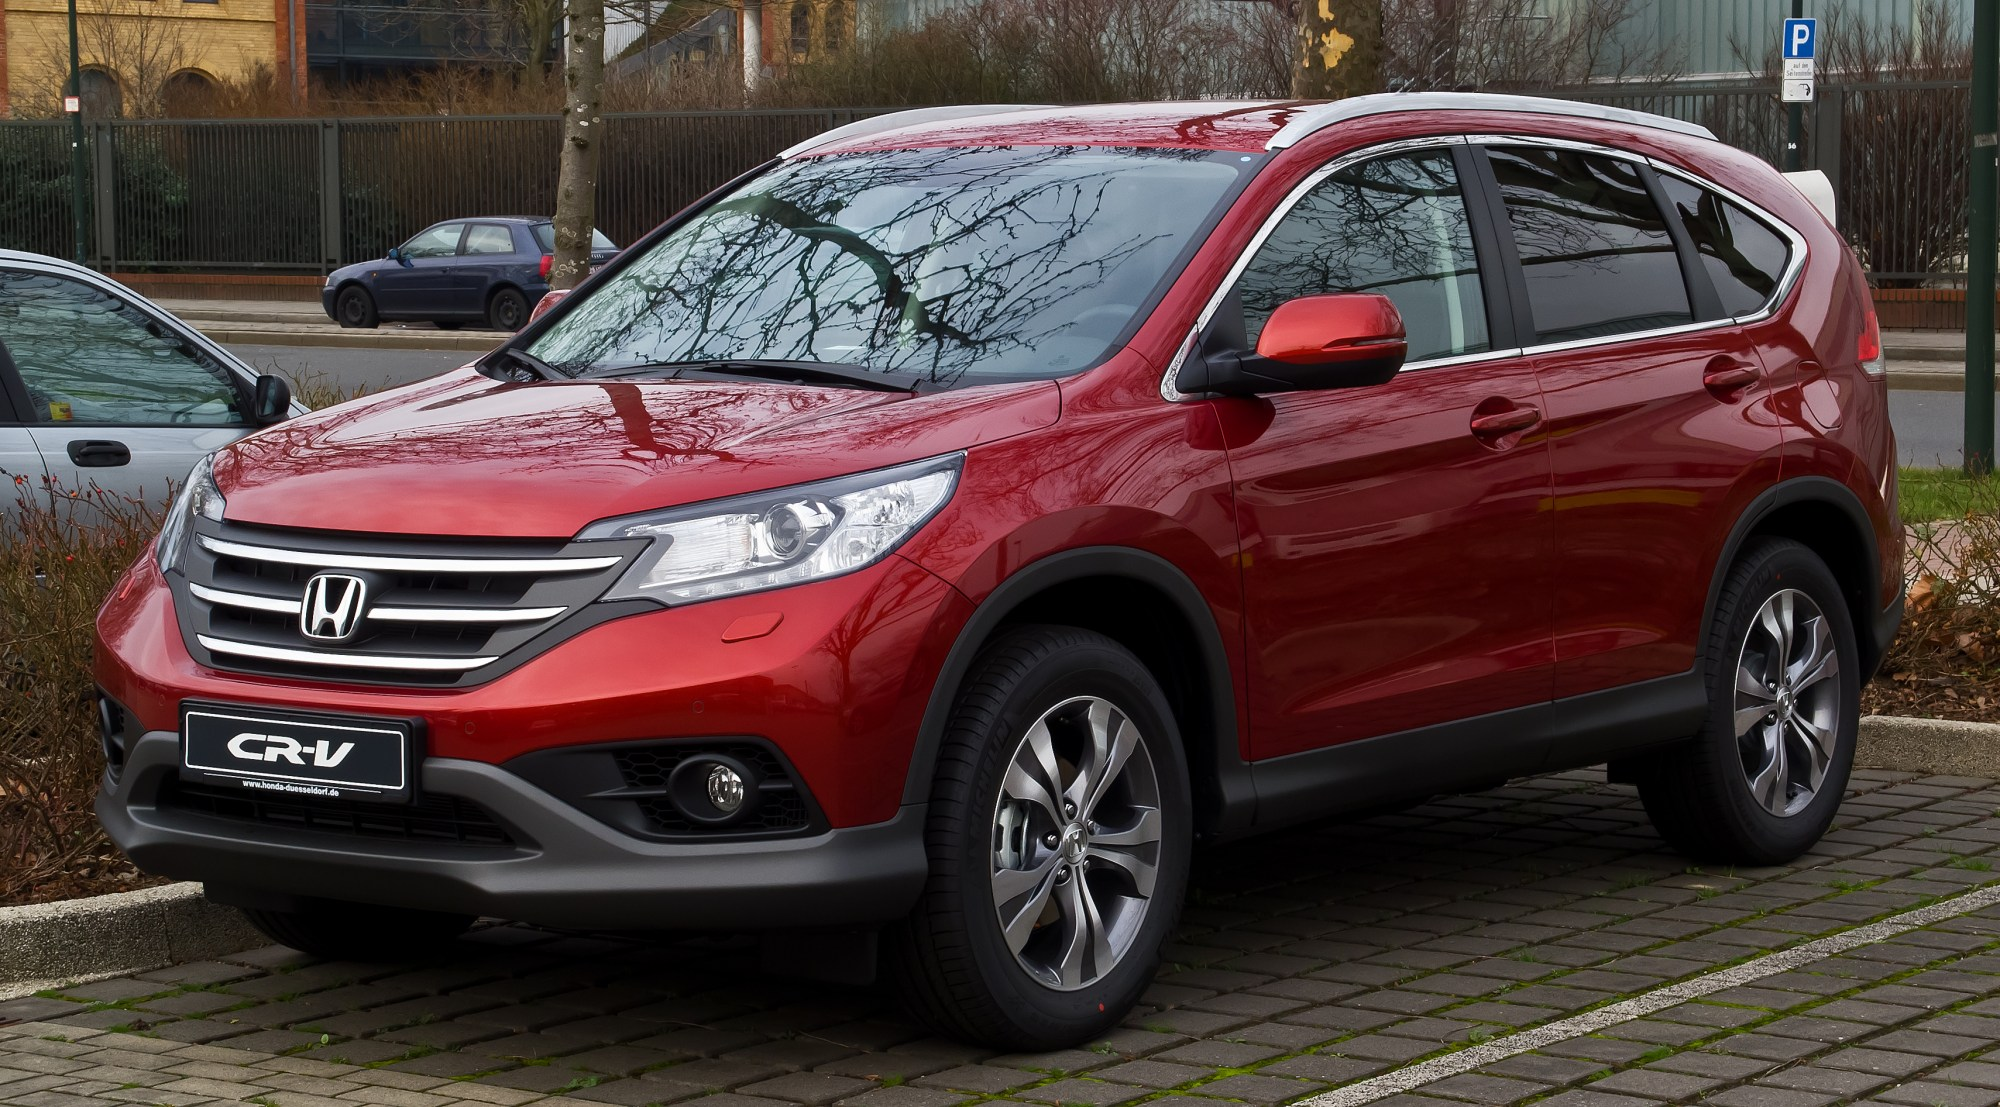 hight resolution of honda cr v 2 2 i dtec lifestyle iv frontansicht 25